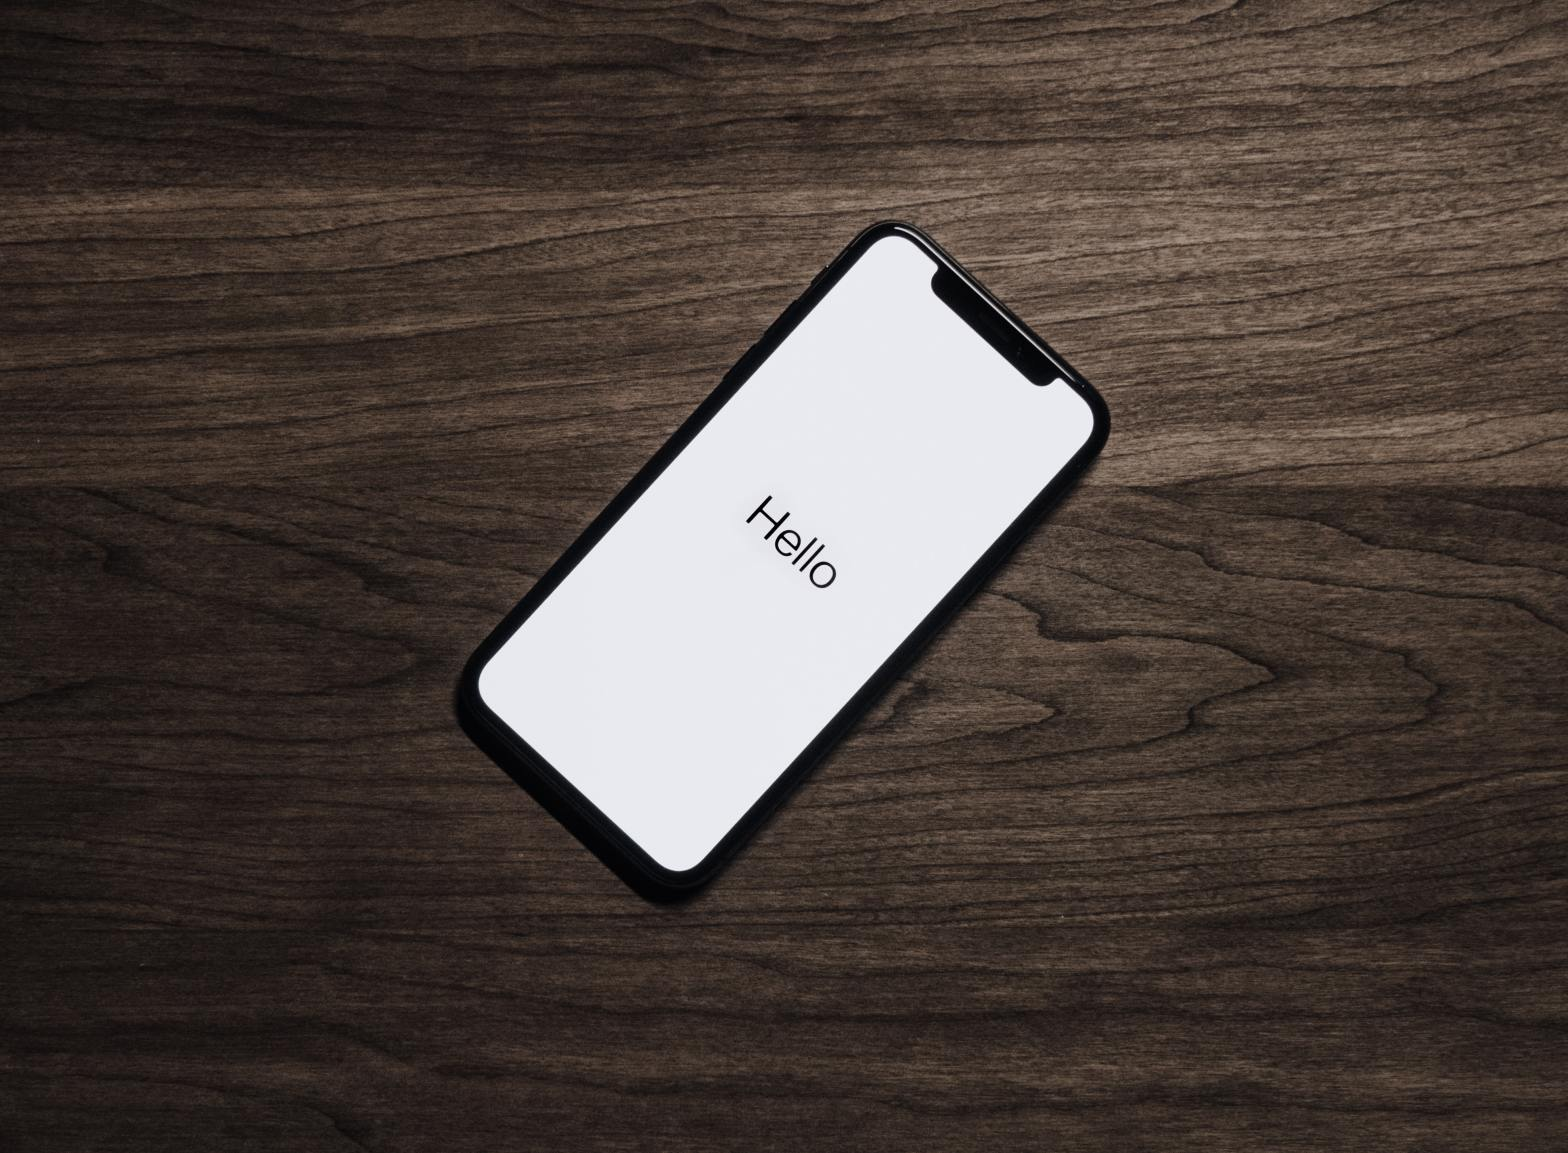 "image of iphone on table with the word ""hello"" displayed on the screen"